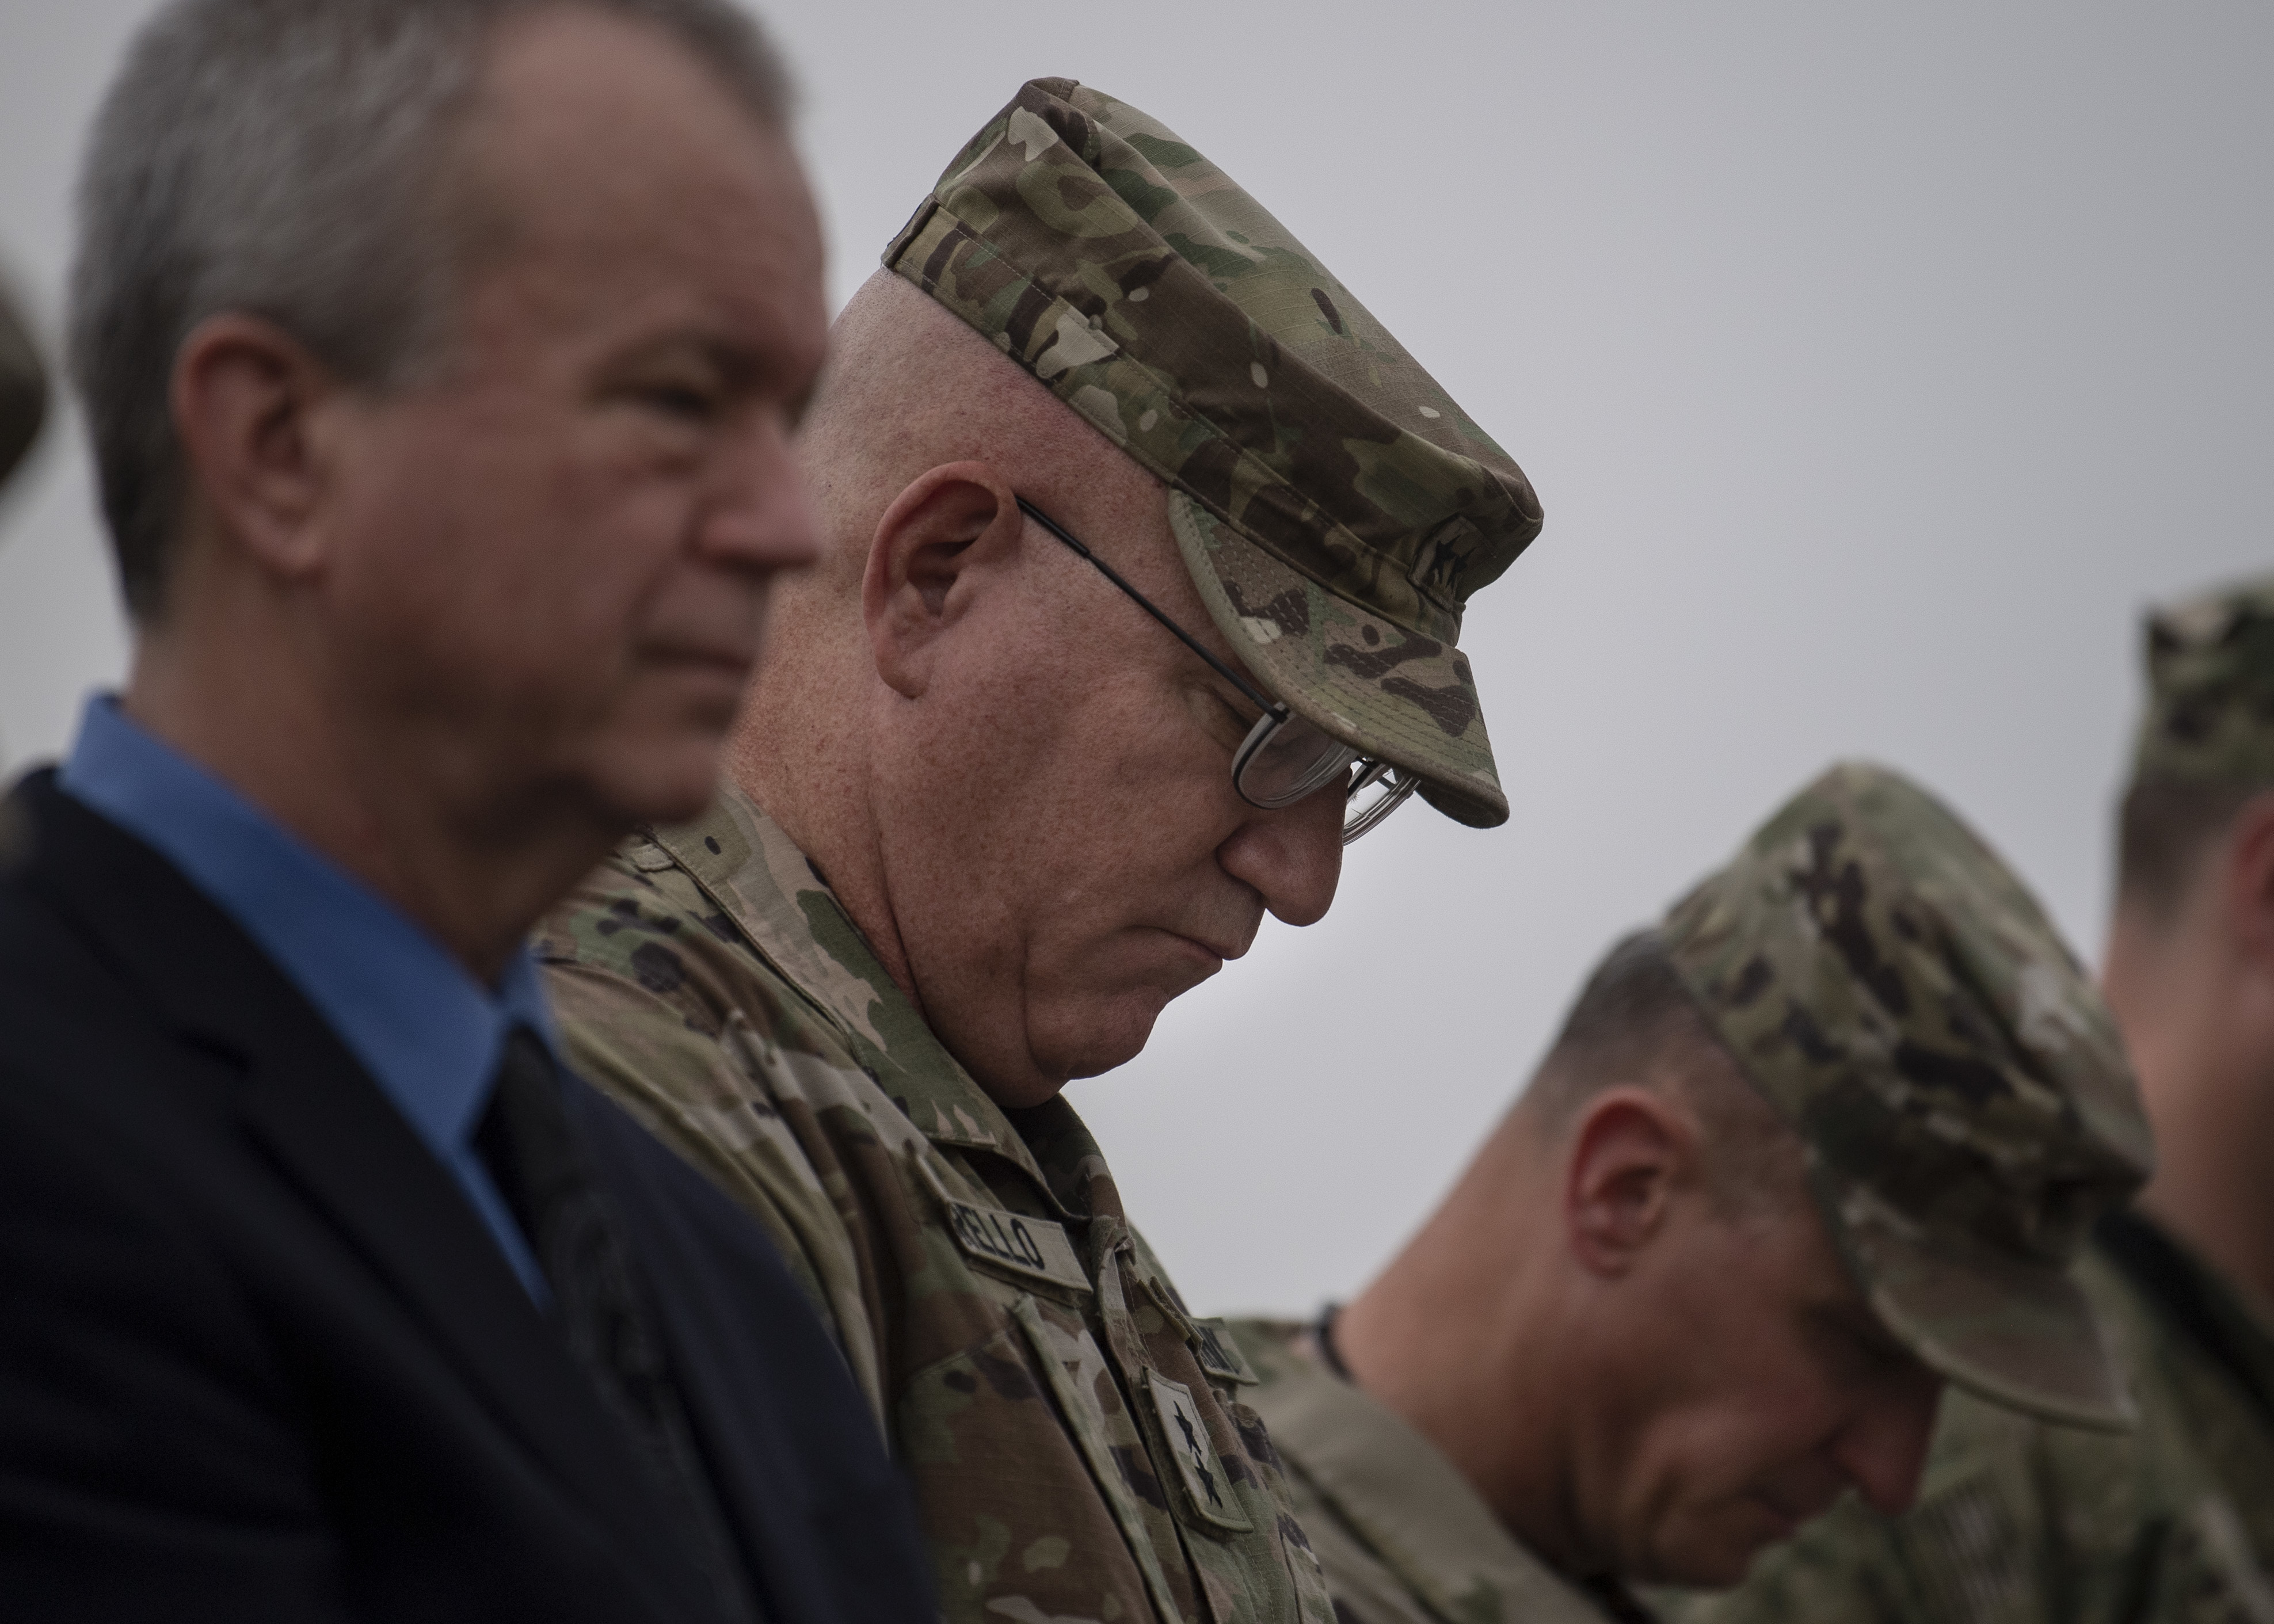 U.S. Army Maj. Gen. Michael Turello, commanding general, Combined Joint Task Force-Horn of Africa, right, Amb. Larry André, U.S. Ambassador to Djibouti, reflect during the invocation of the 9/11remembrance ceremony at Camp Lemonnier, Djibouti, Sept. 11, 2019. The ceremony honored those who lost their lives in New York City, Washington D.C. and Pennsylvania 18 years ago. (U.S. Air Force photo by Staff Sgt. J.D. Strong II)